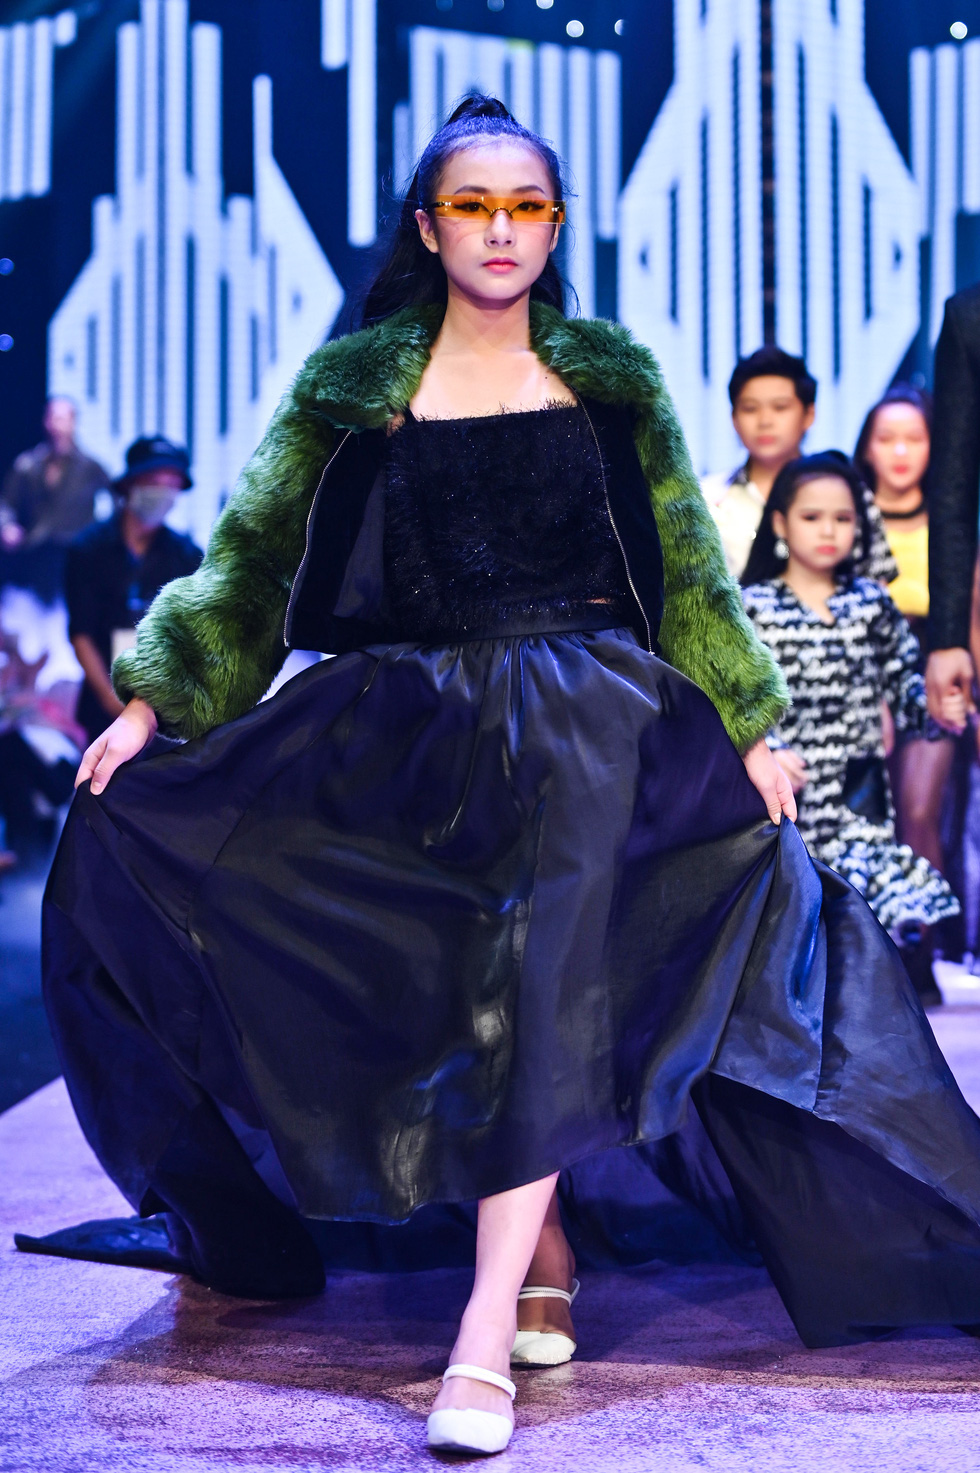 Luong Thuy Linh and Kieu Loan transform into gorgeous, personality dolls - Photo 3.